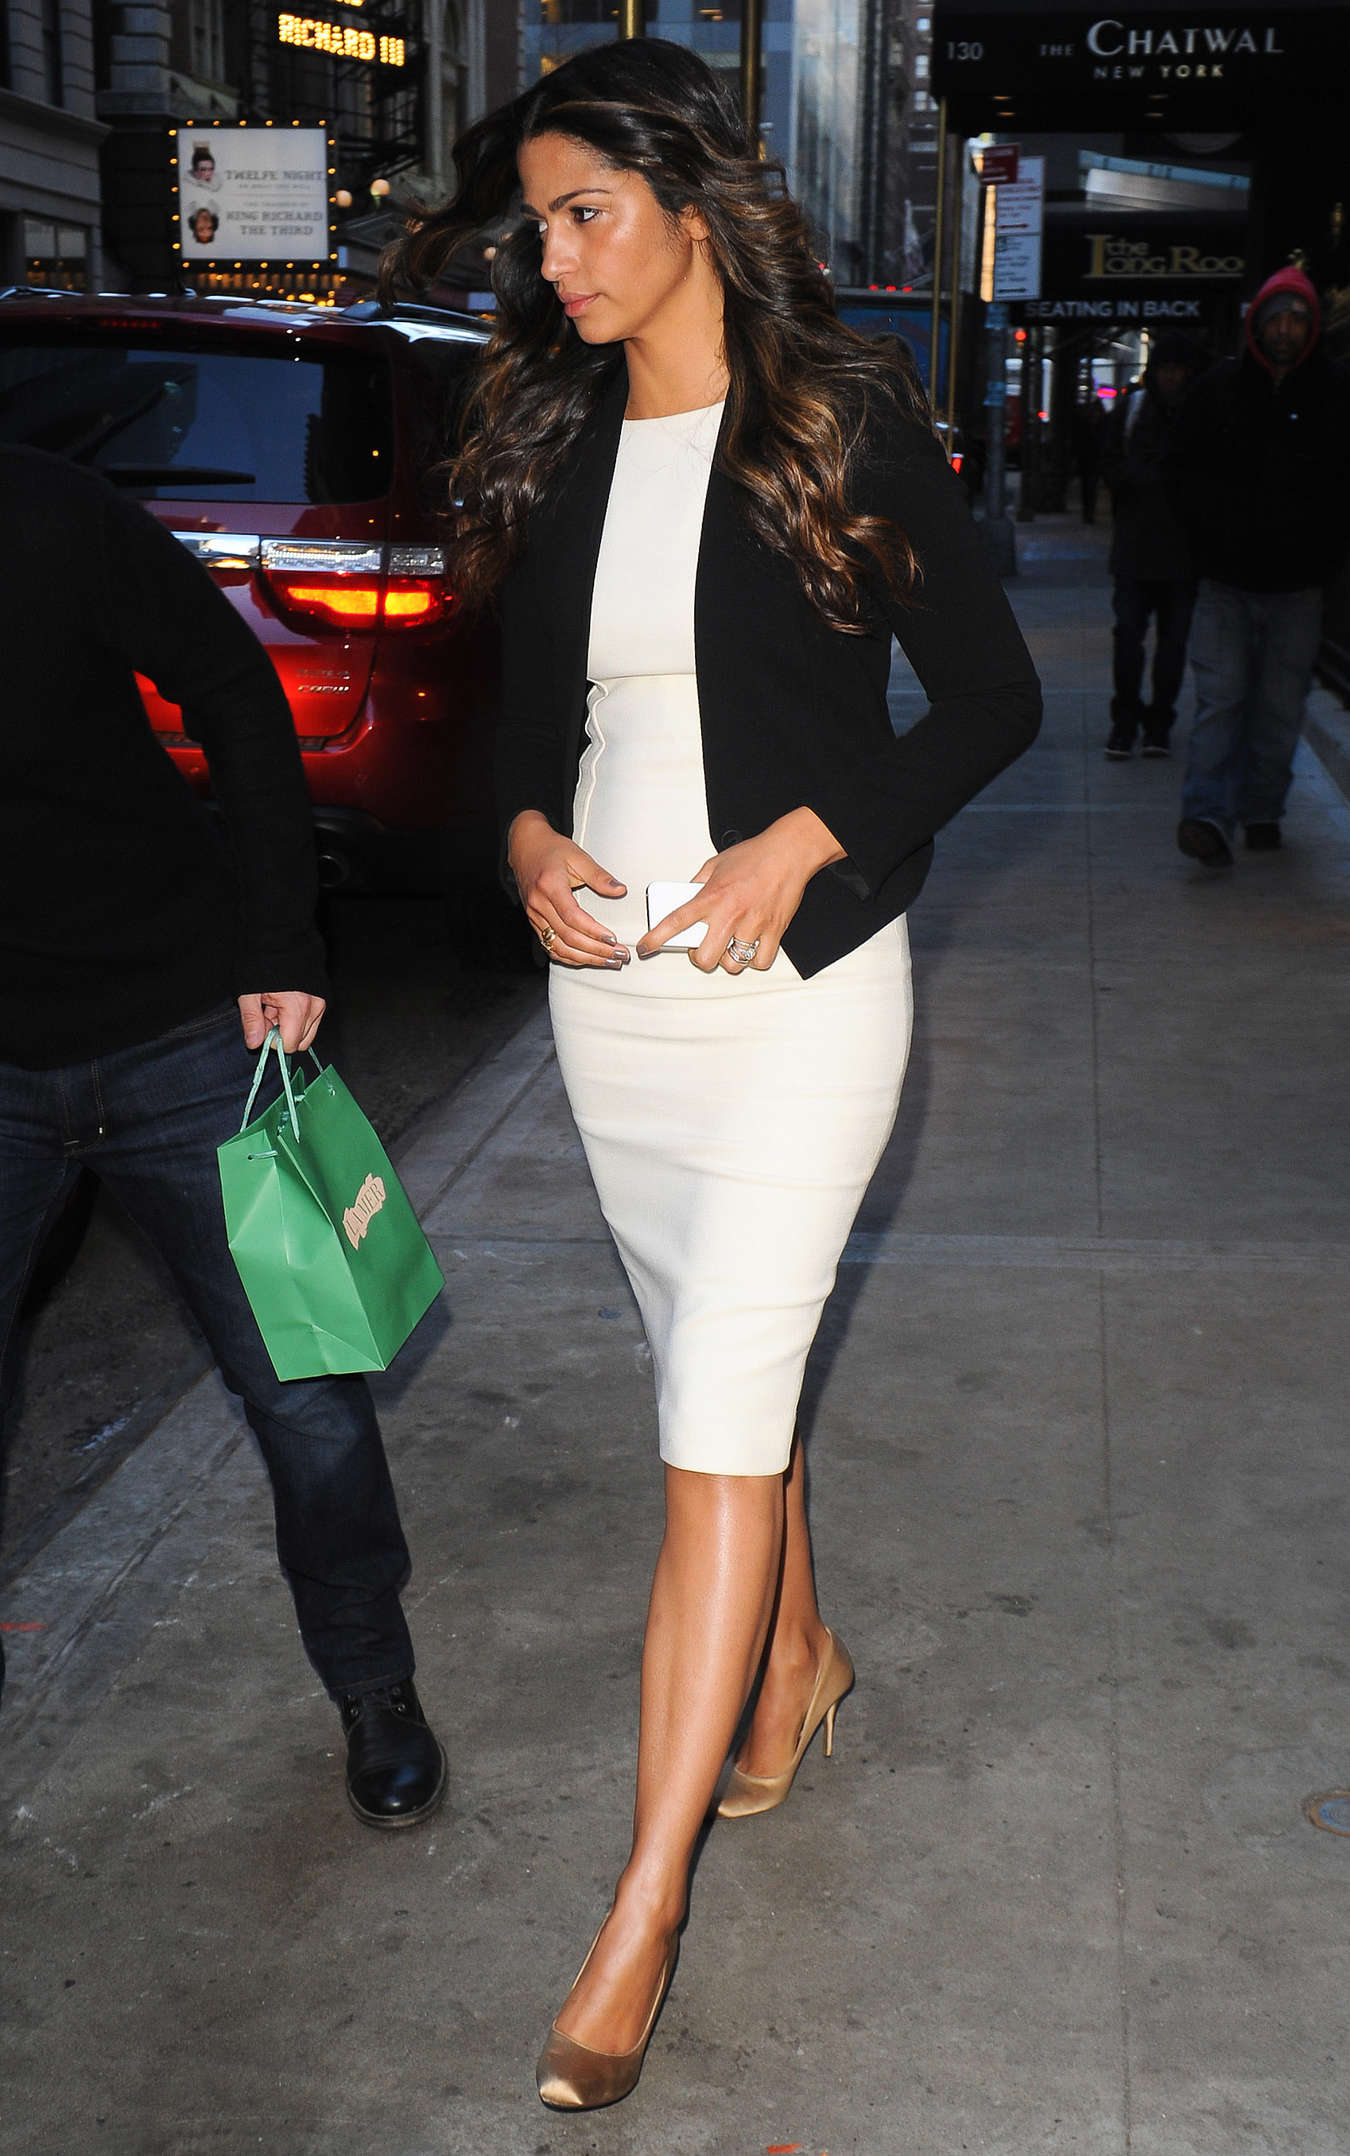 Camila Alves Seen at The Lamb Club restaurant in New York